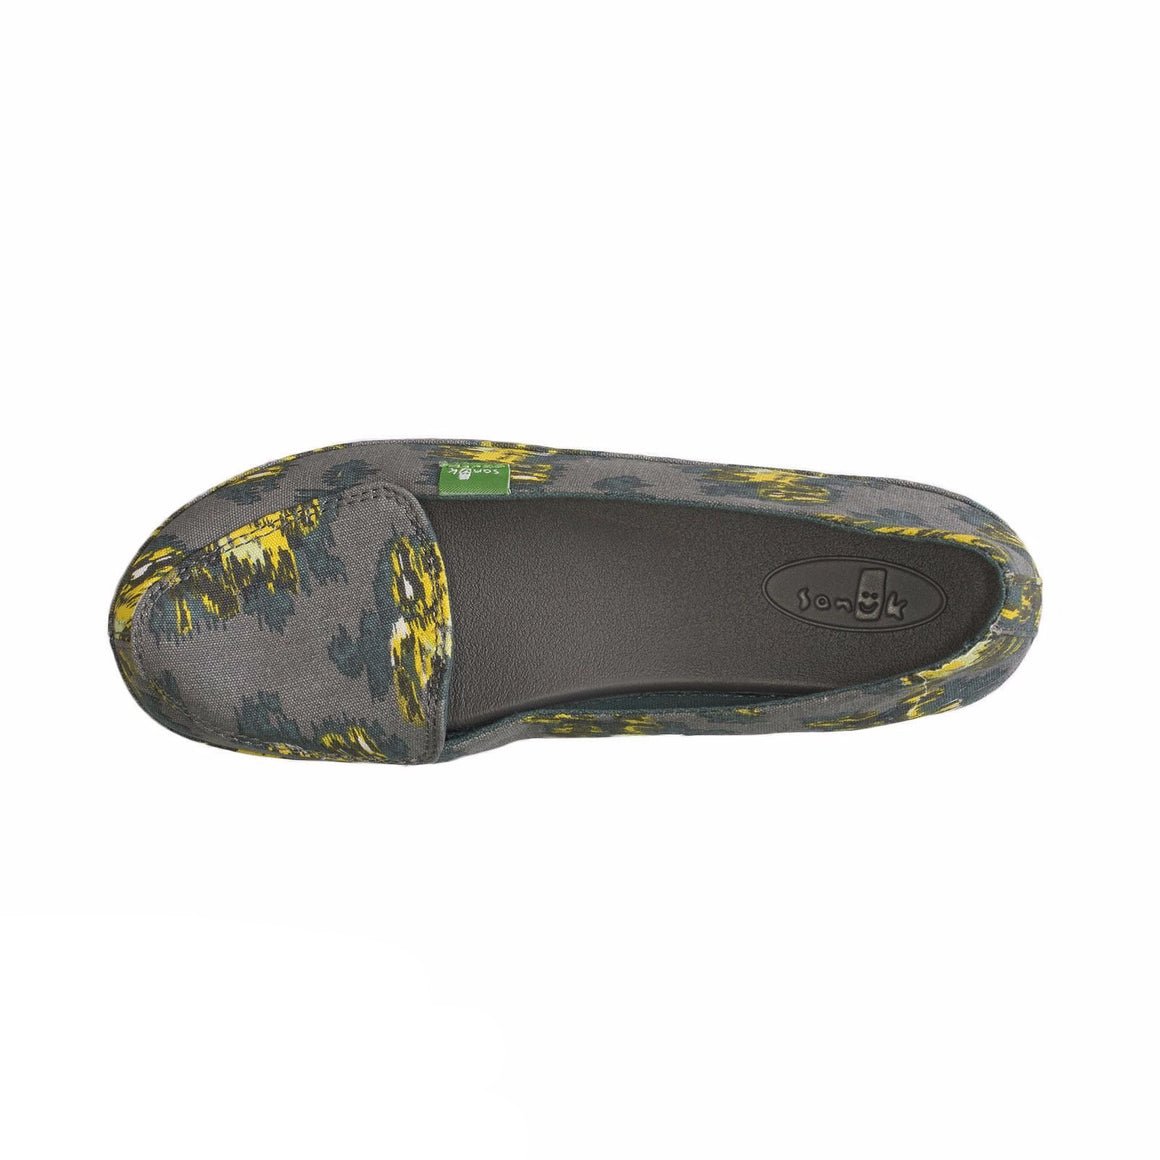 Sanuk Blanche Prints Charcoal / Ikat Floral Shoes